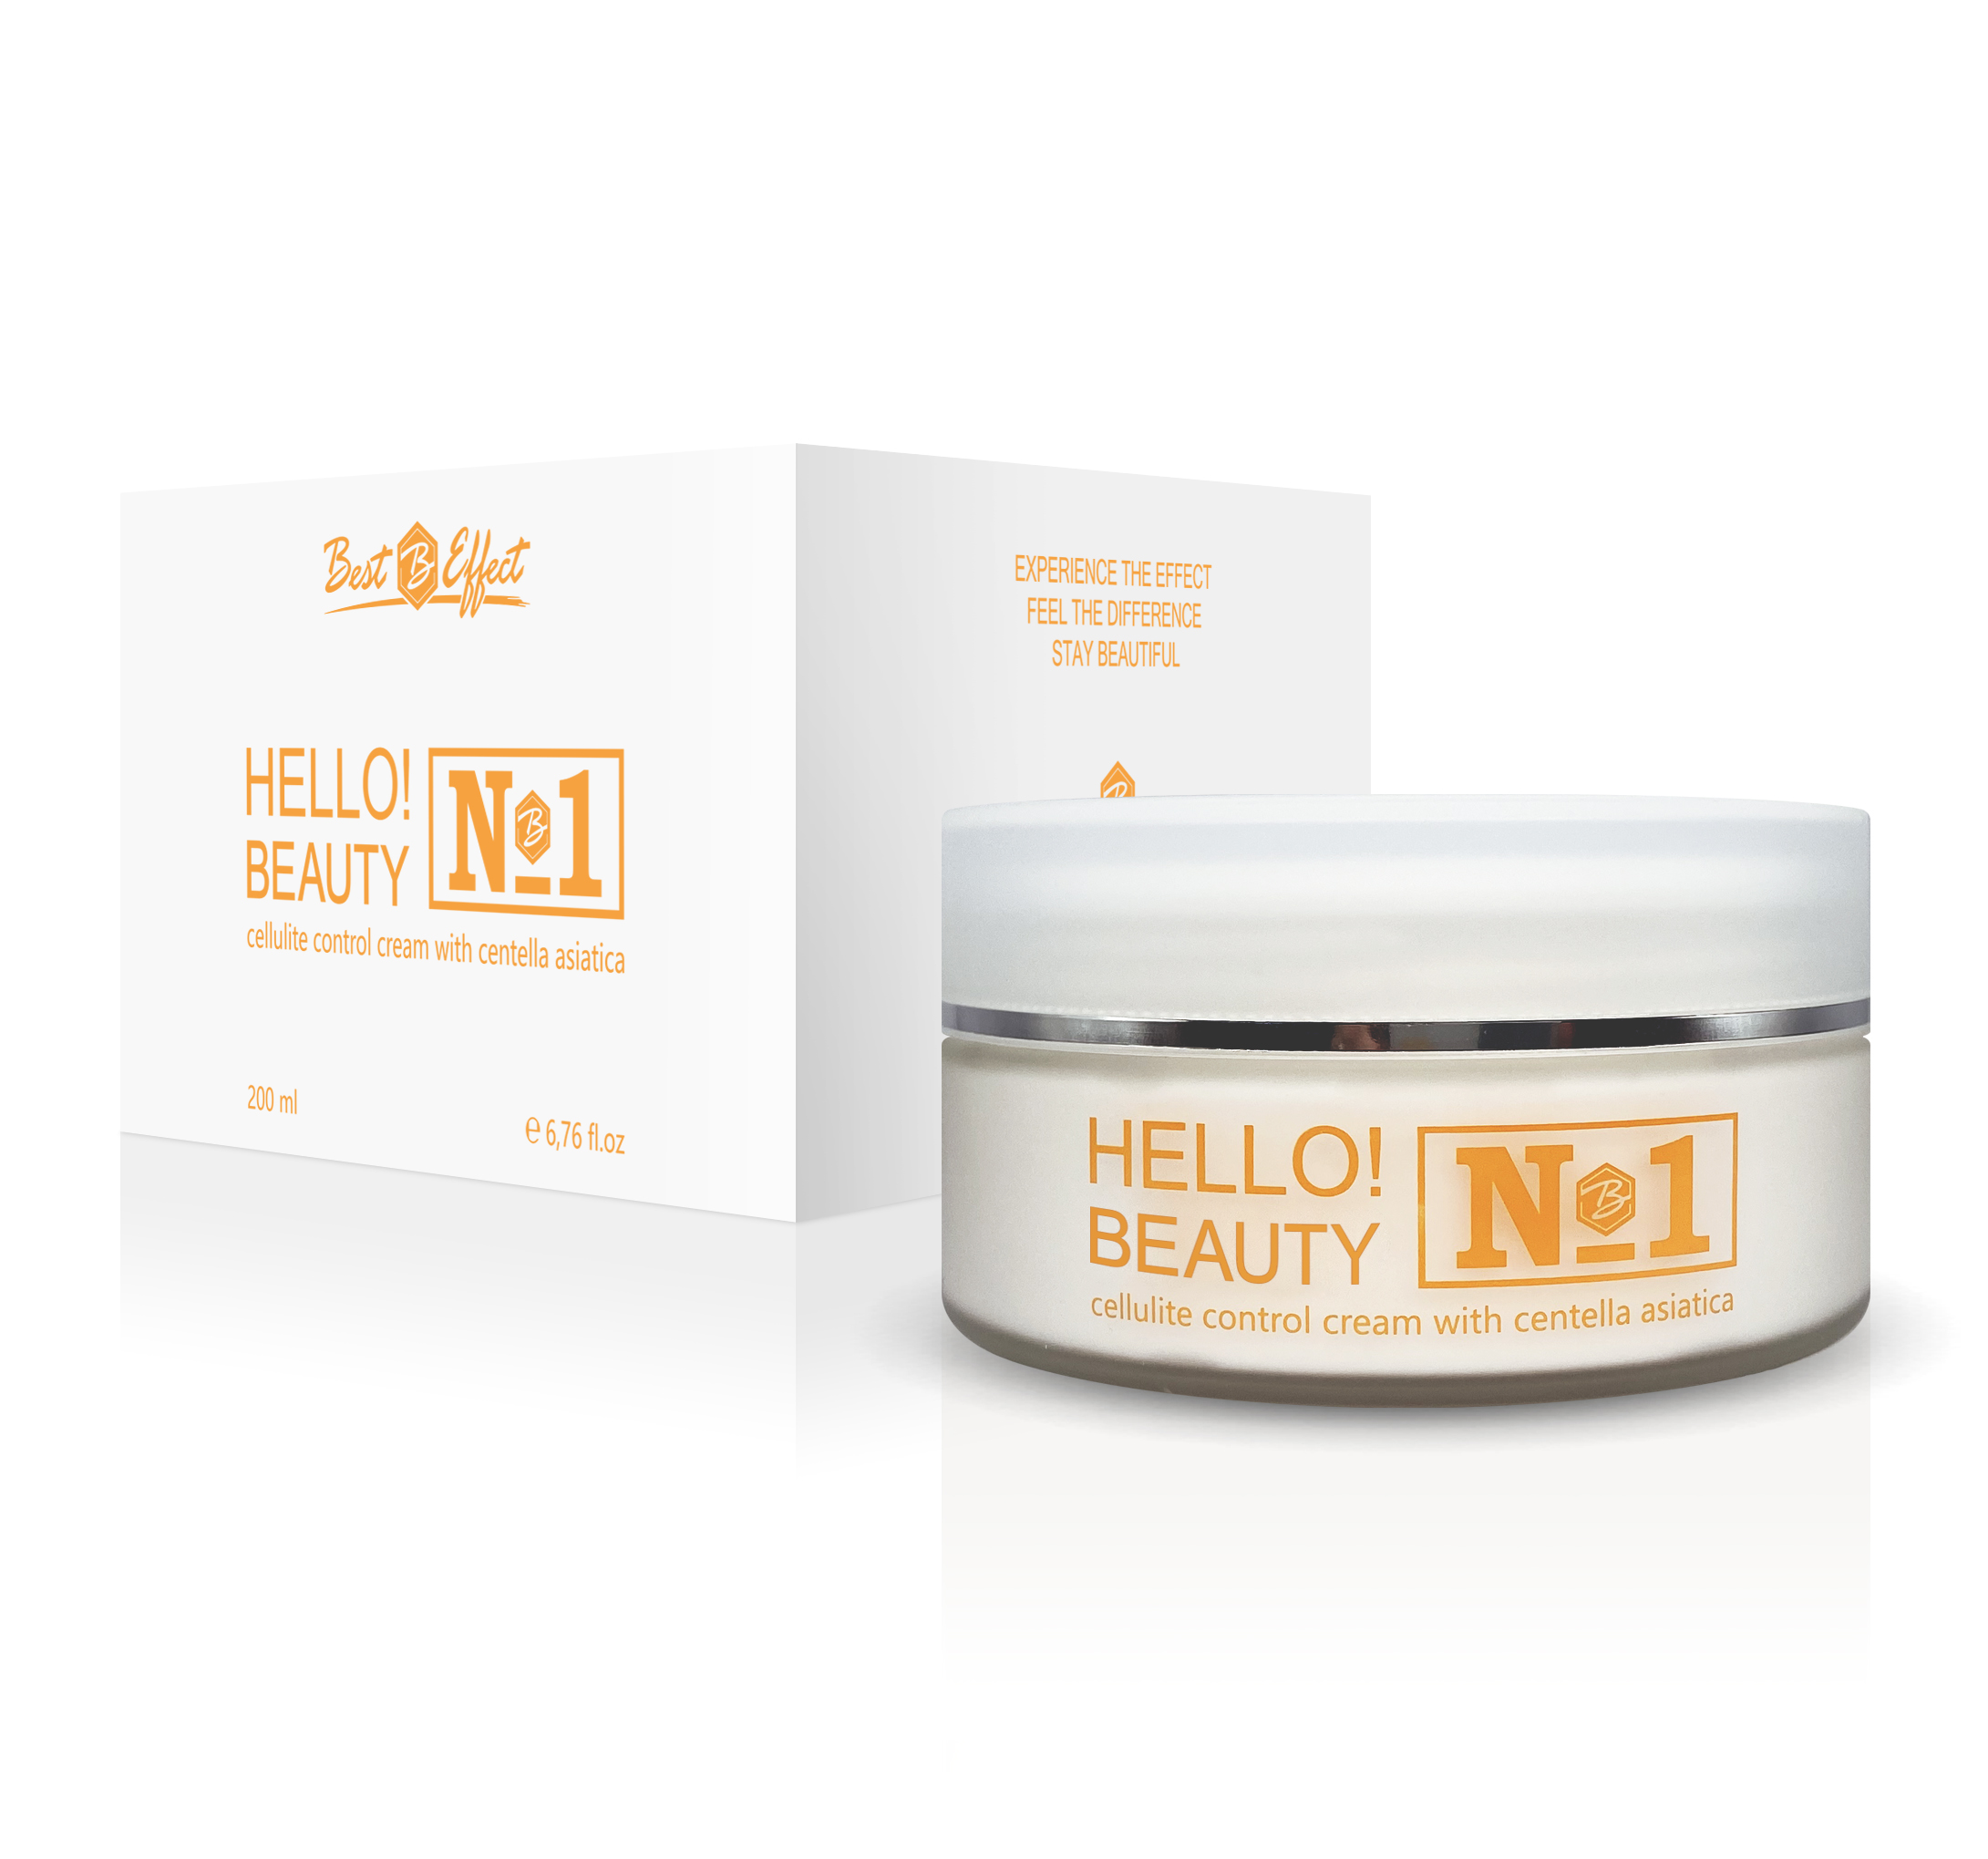 Hello!Beauty N1 cellulite control cream